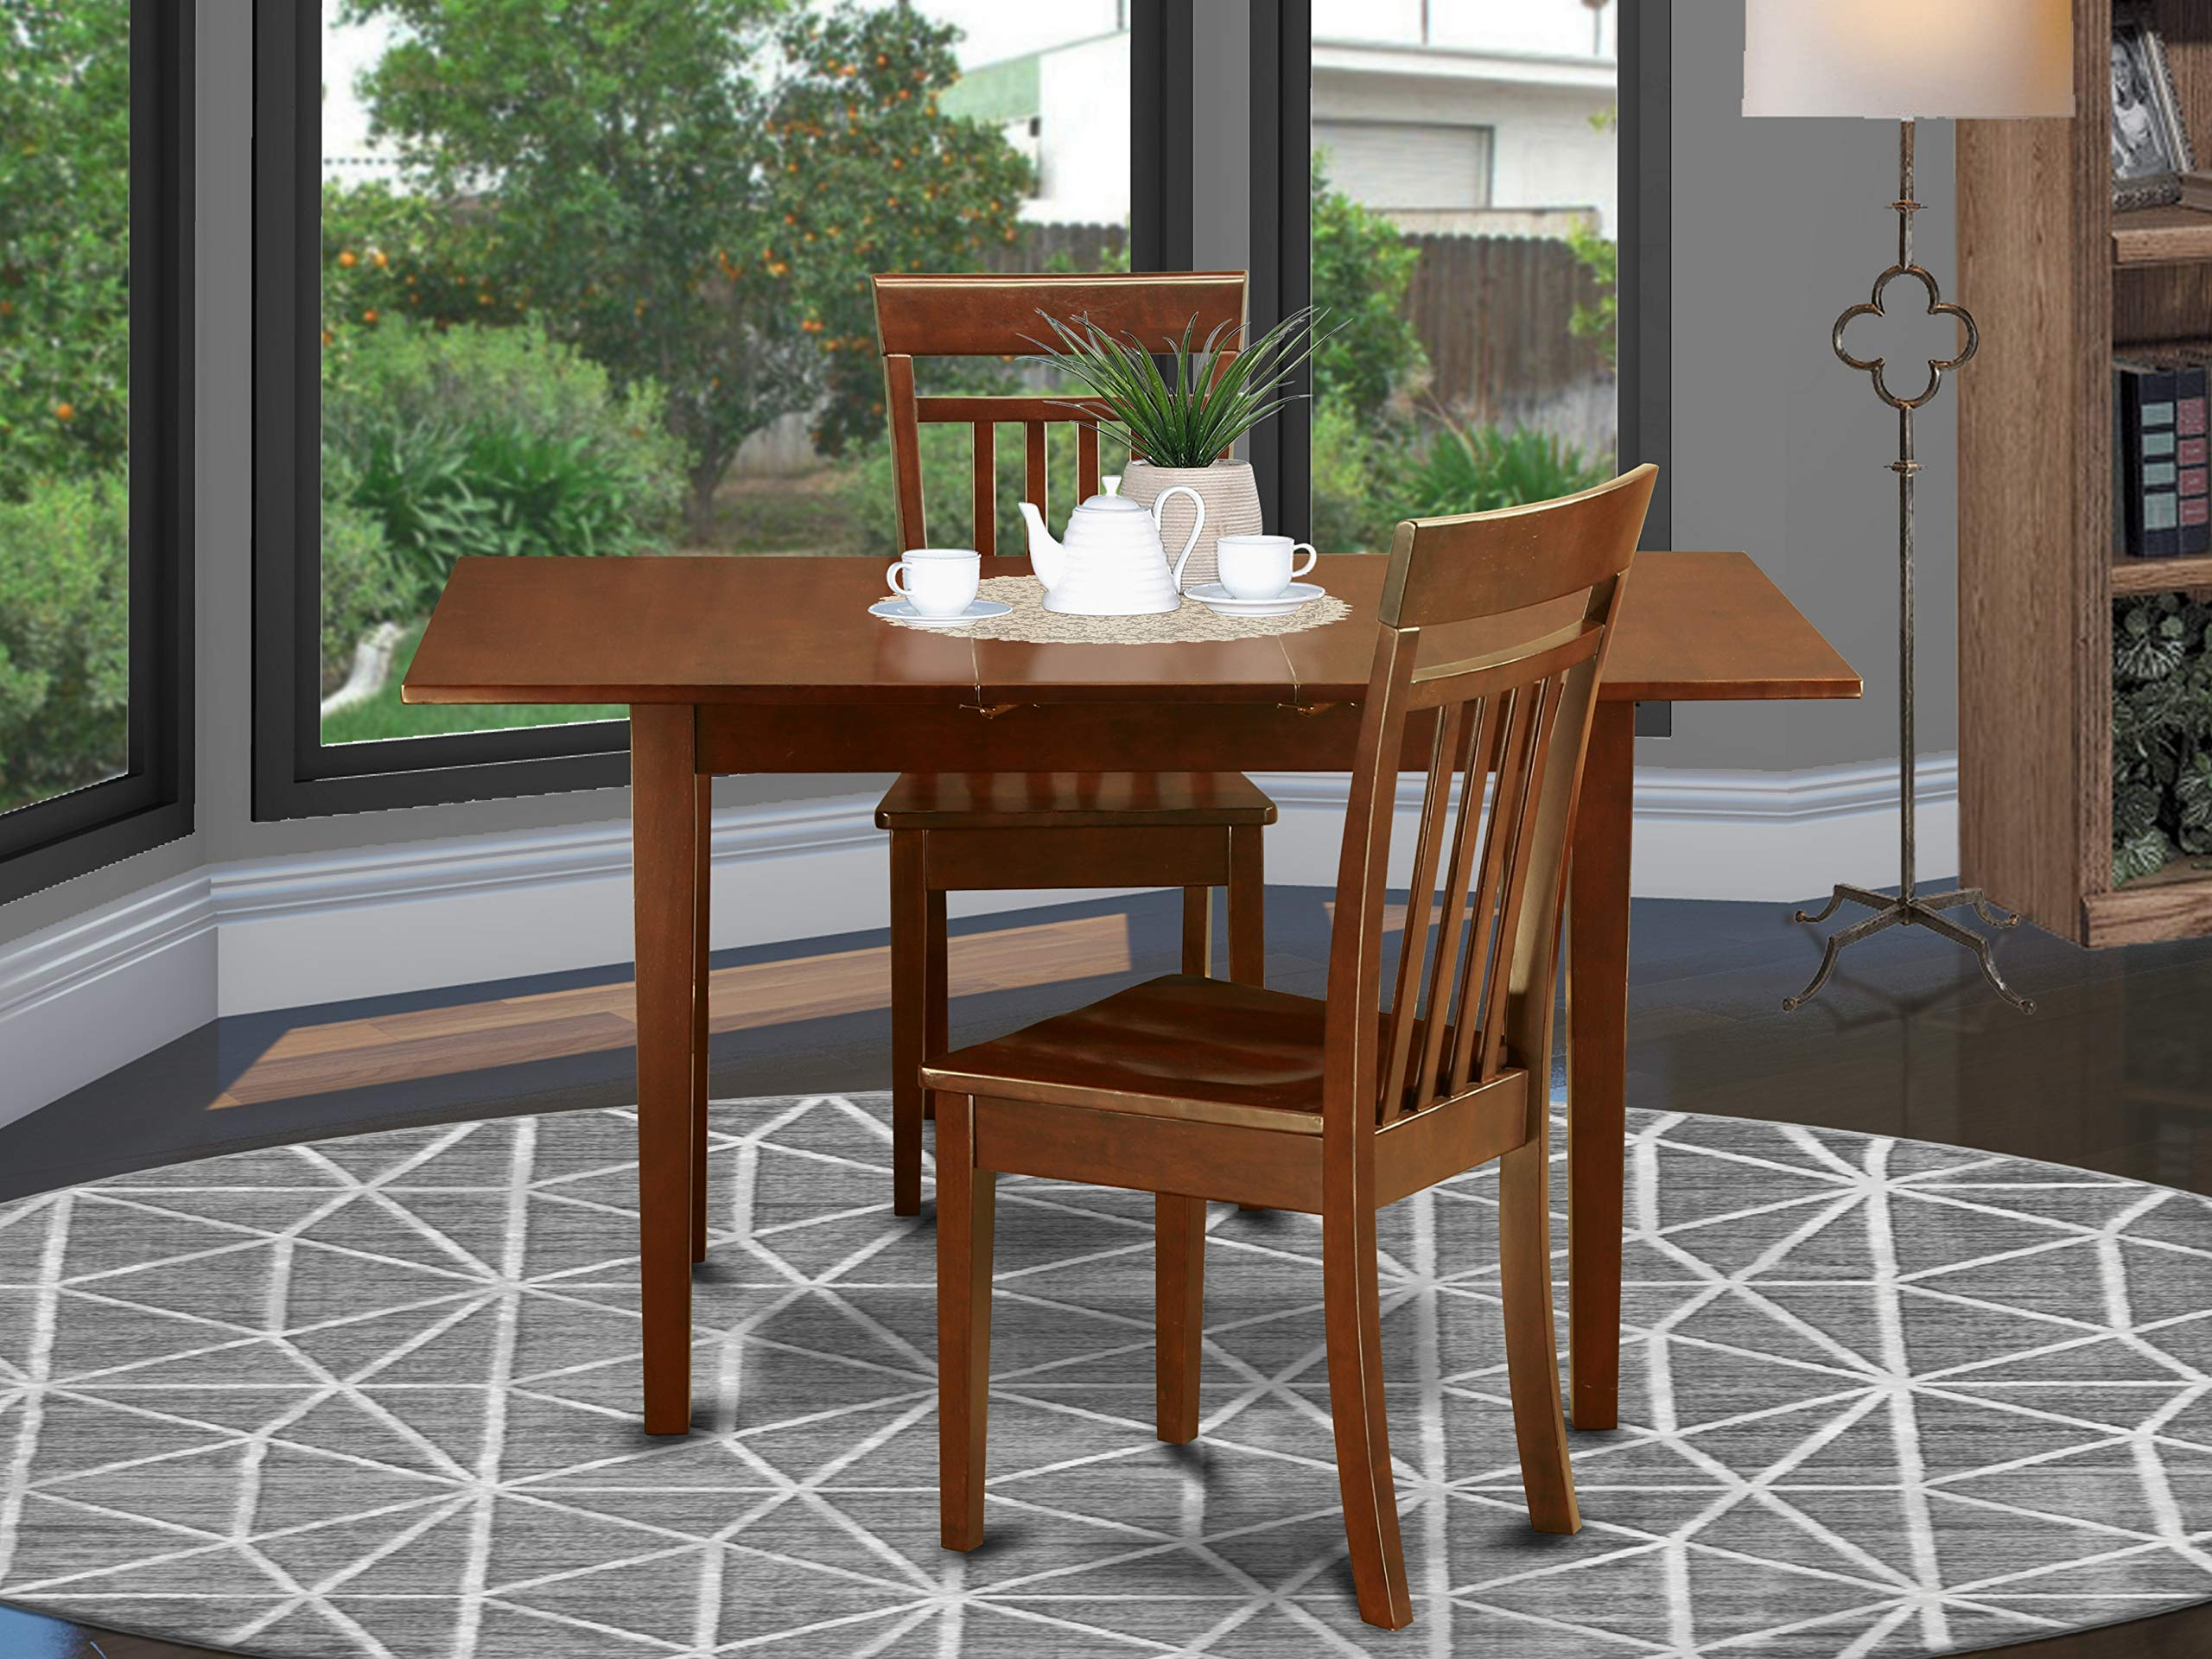 3 Pc Kitchen table set - Kitchen Table with Leaf and 2 Kitchen Dining Chairs